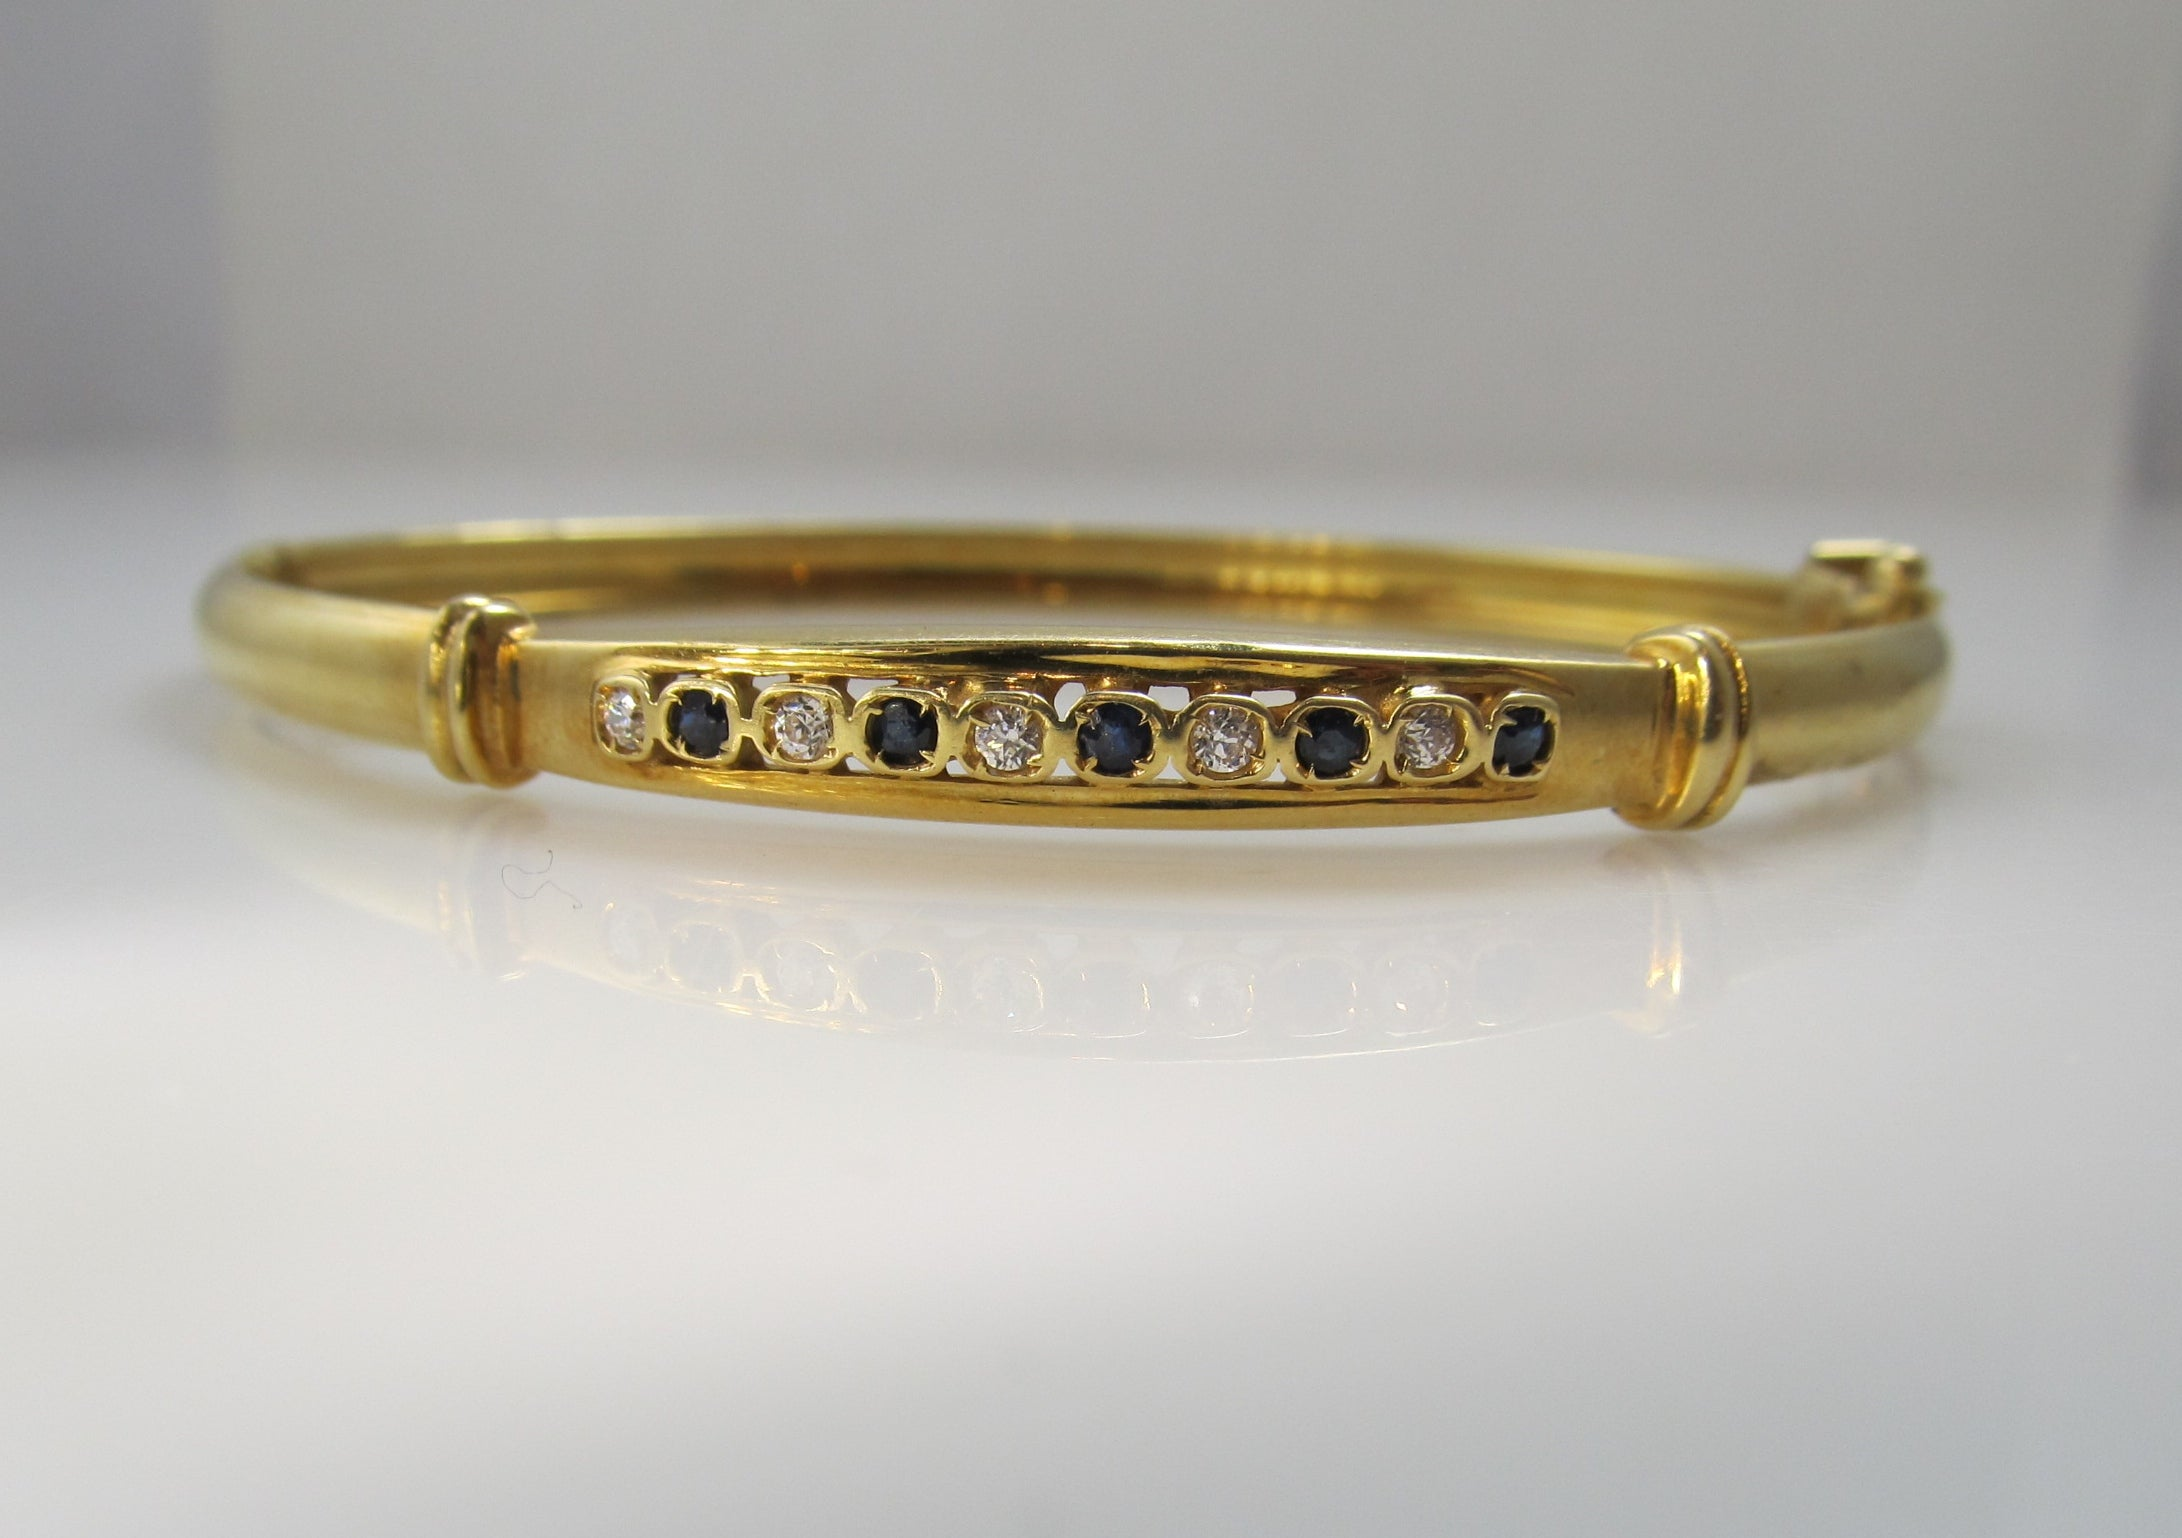 18k yellow gold bangle bracelet with sapphires and diamonds